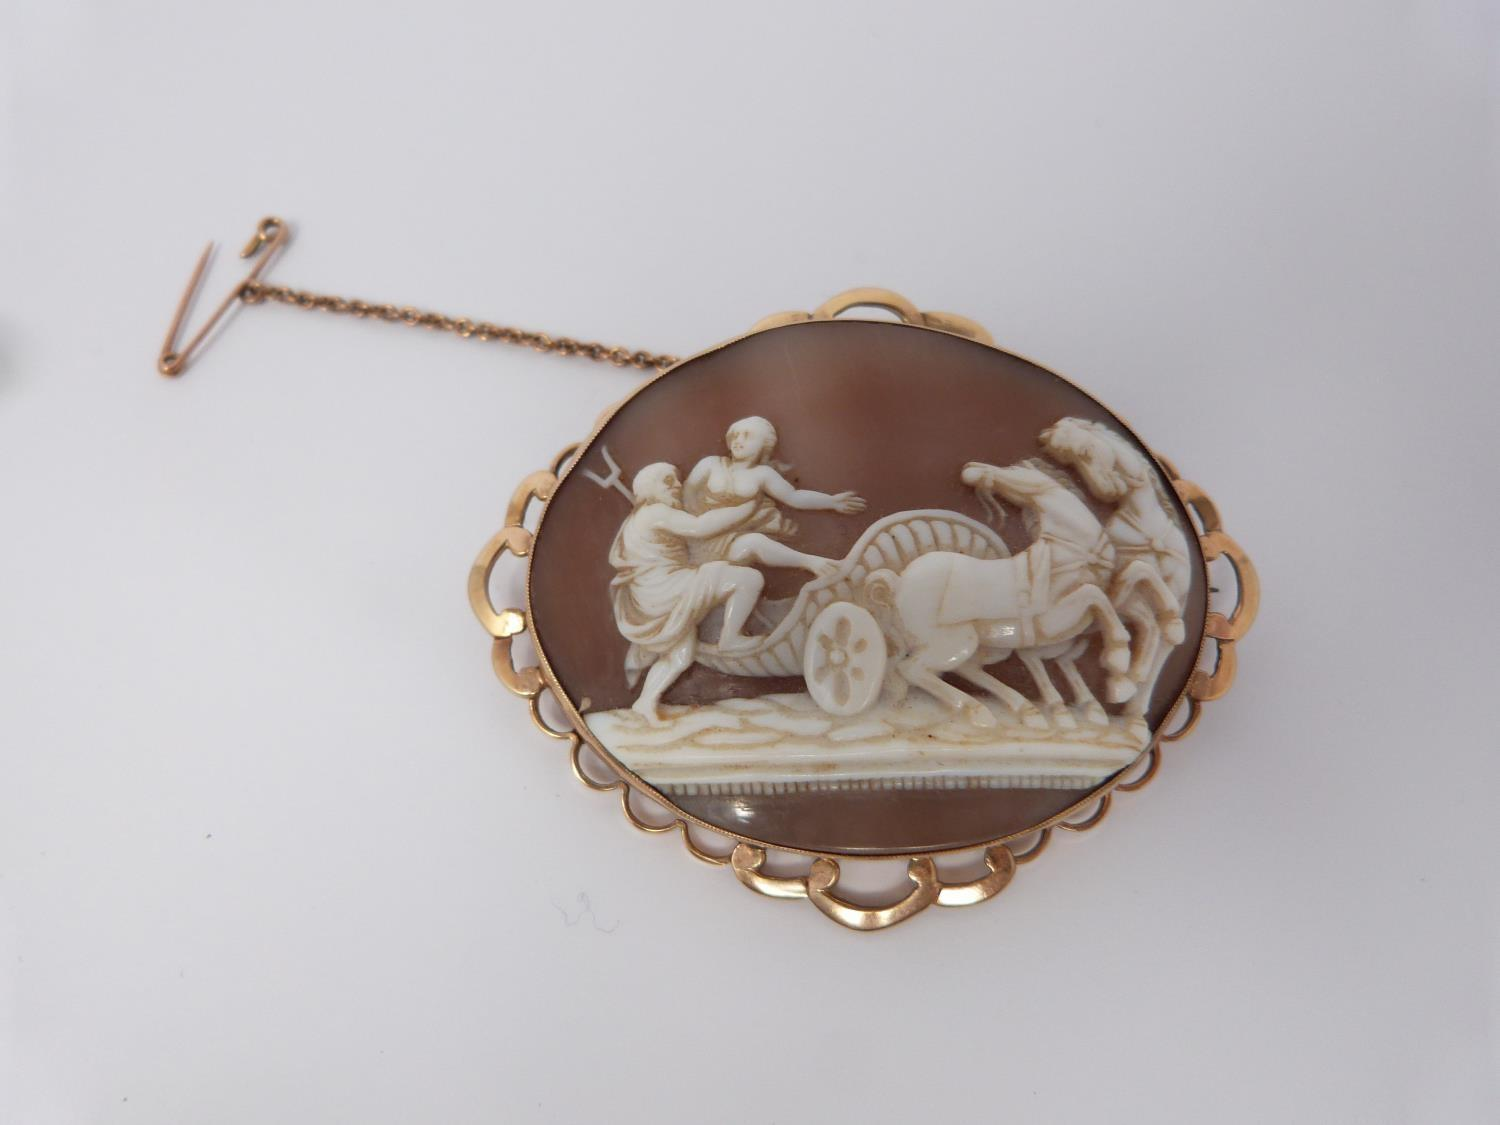 A 9ct stamped yellow gold landscape cameo brooch depicting man and woman climbing into a chariot - Image 3 of 9